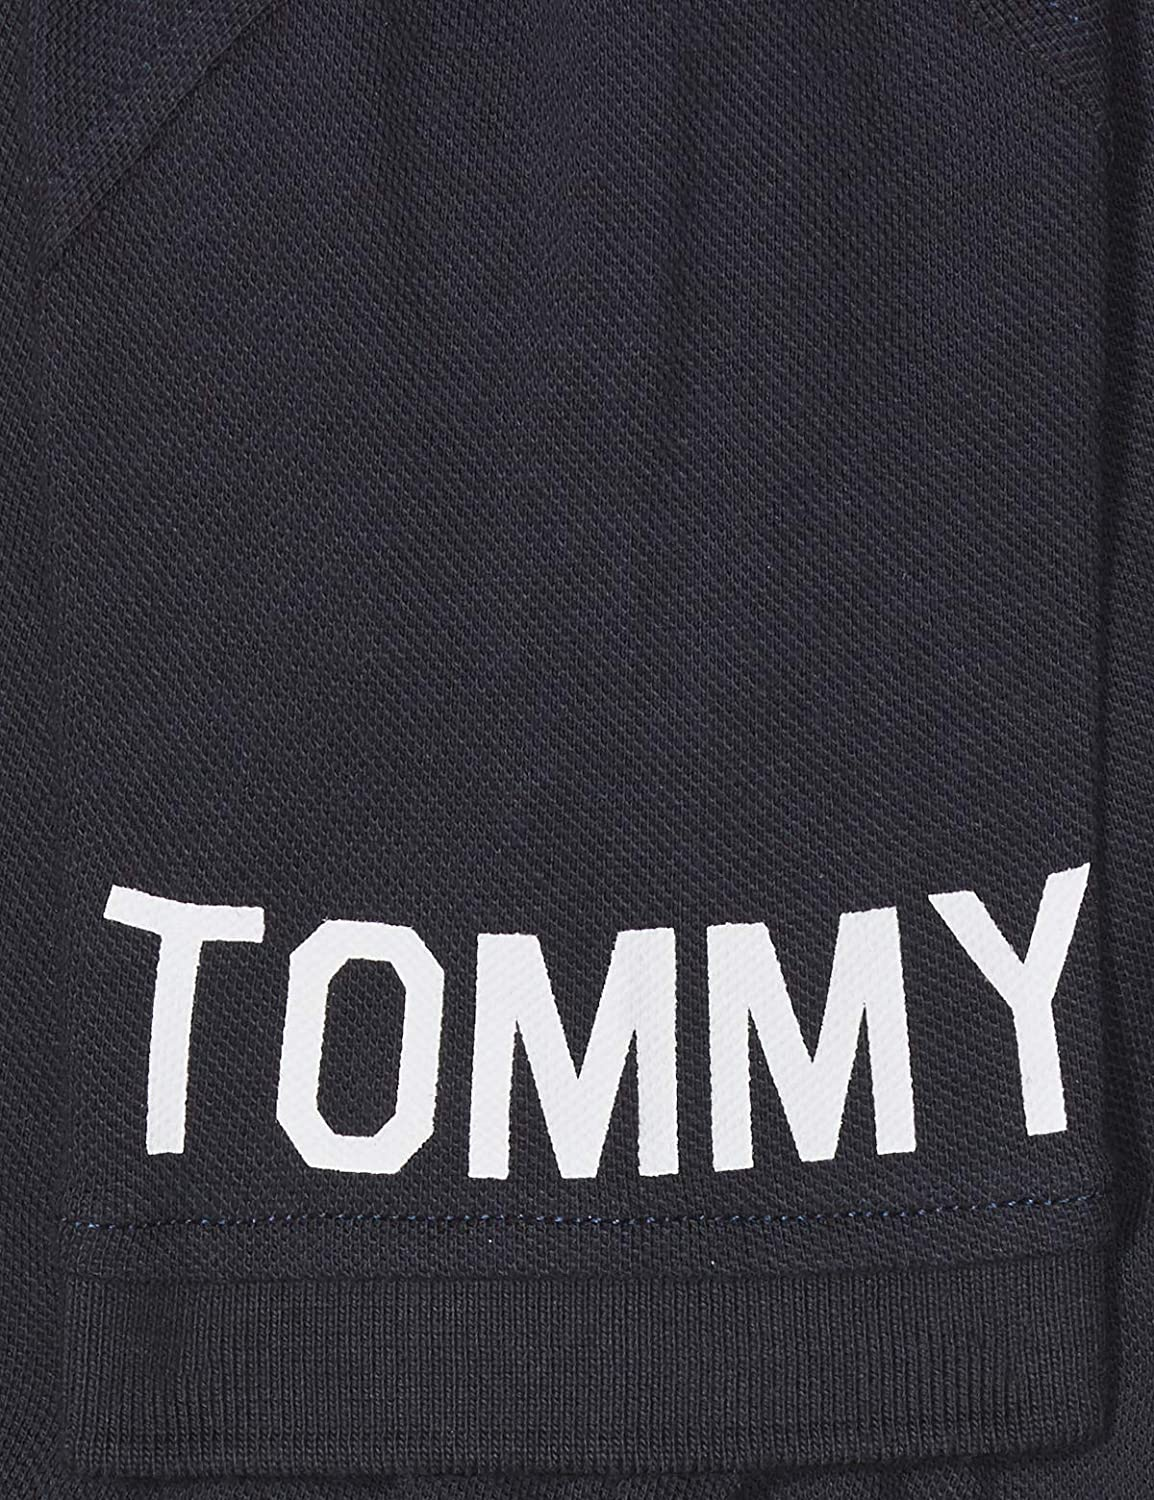 Tommy Hilfiger Boys Nautical Numbers Polo S//S Shirt